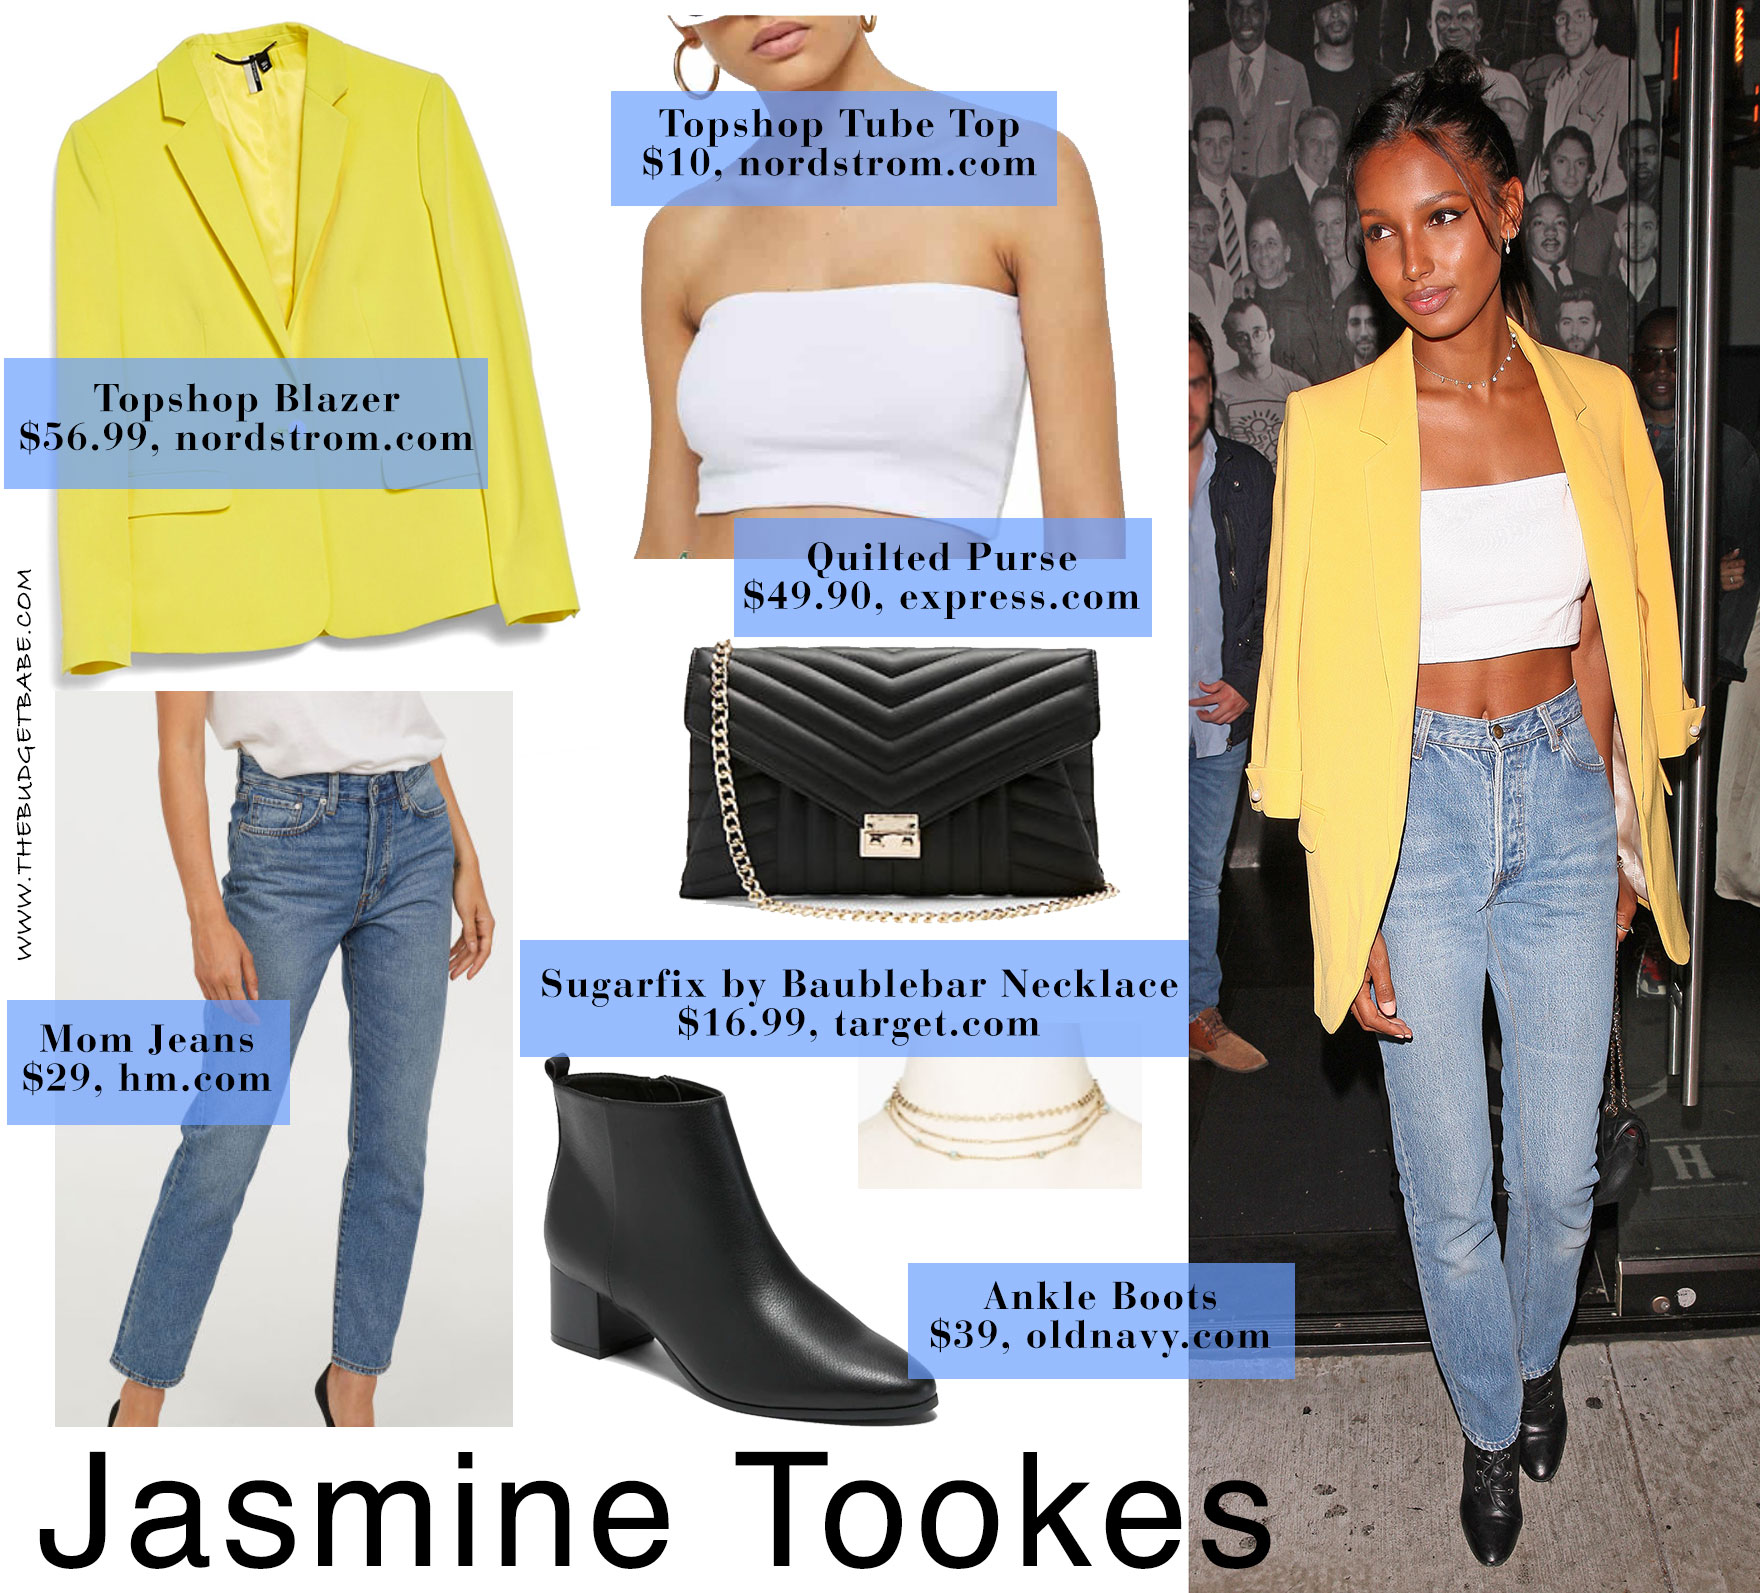 a8fd51bc1b Jasmine Tookes  Yellow Blazer and White Crop Top Look for Less - The ...